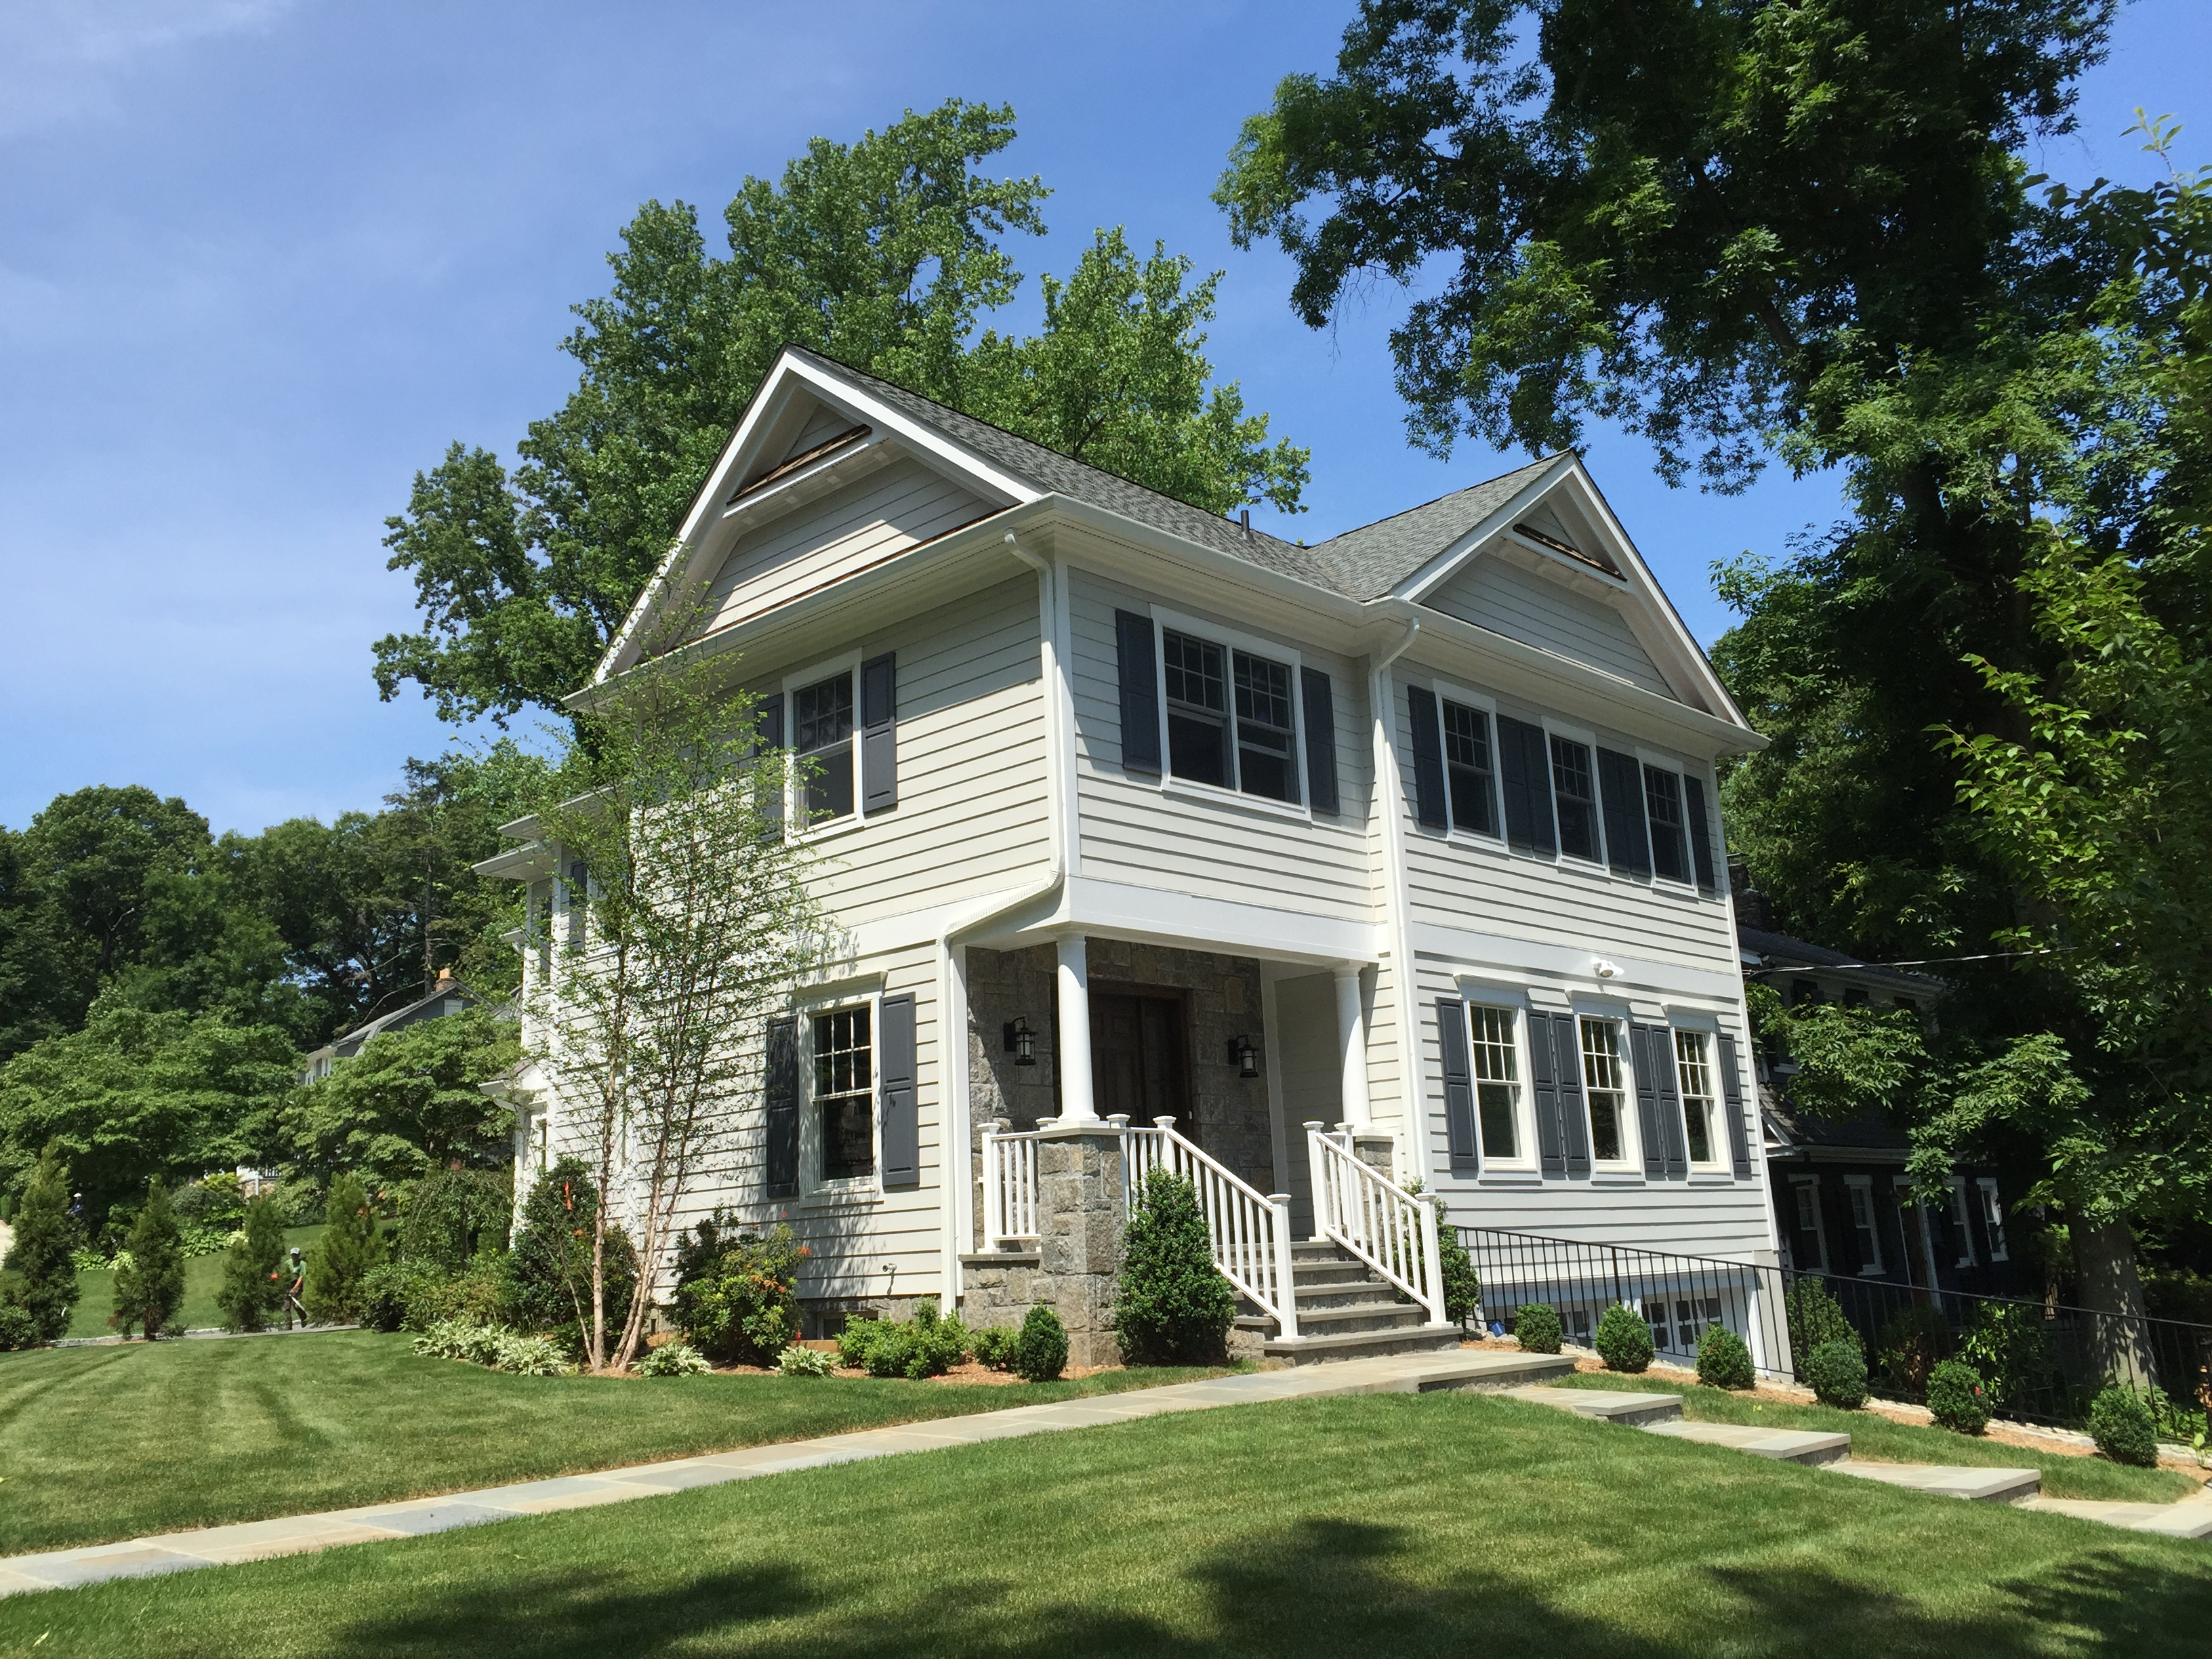 Single Family Home for Sale at Wonderful Colonial to be Built 2 Wildwood Road Larchmont, New York 10538 United States